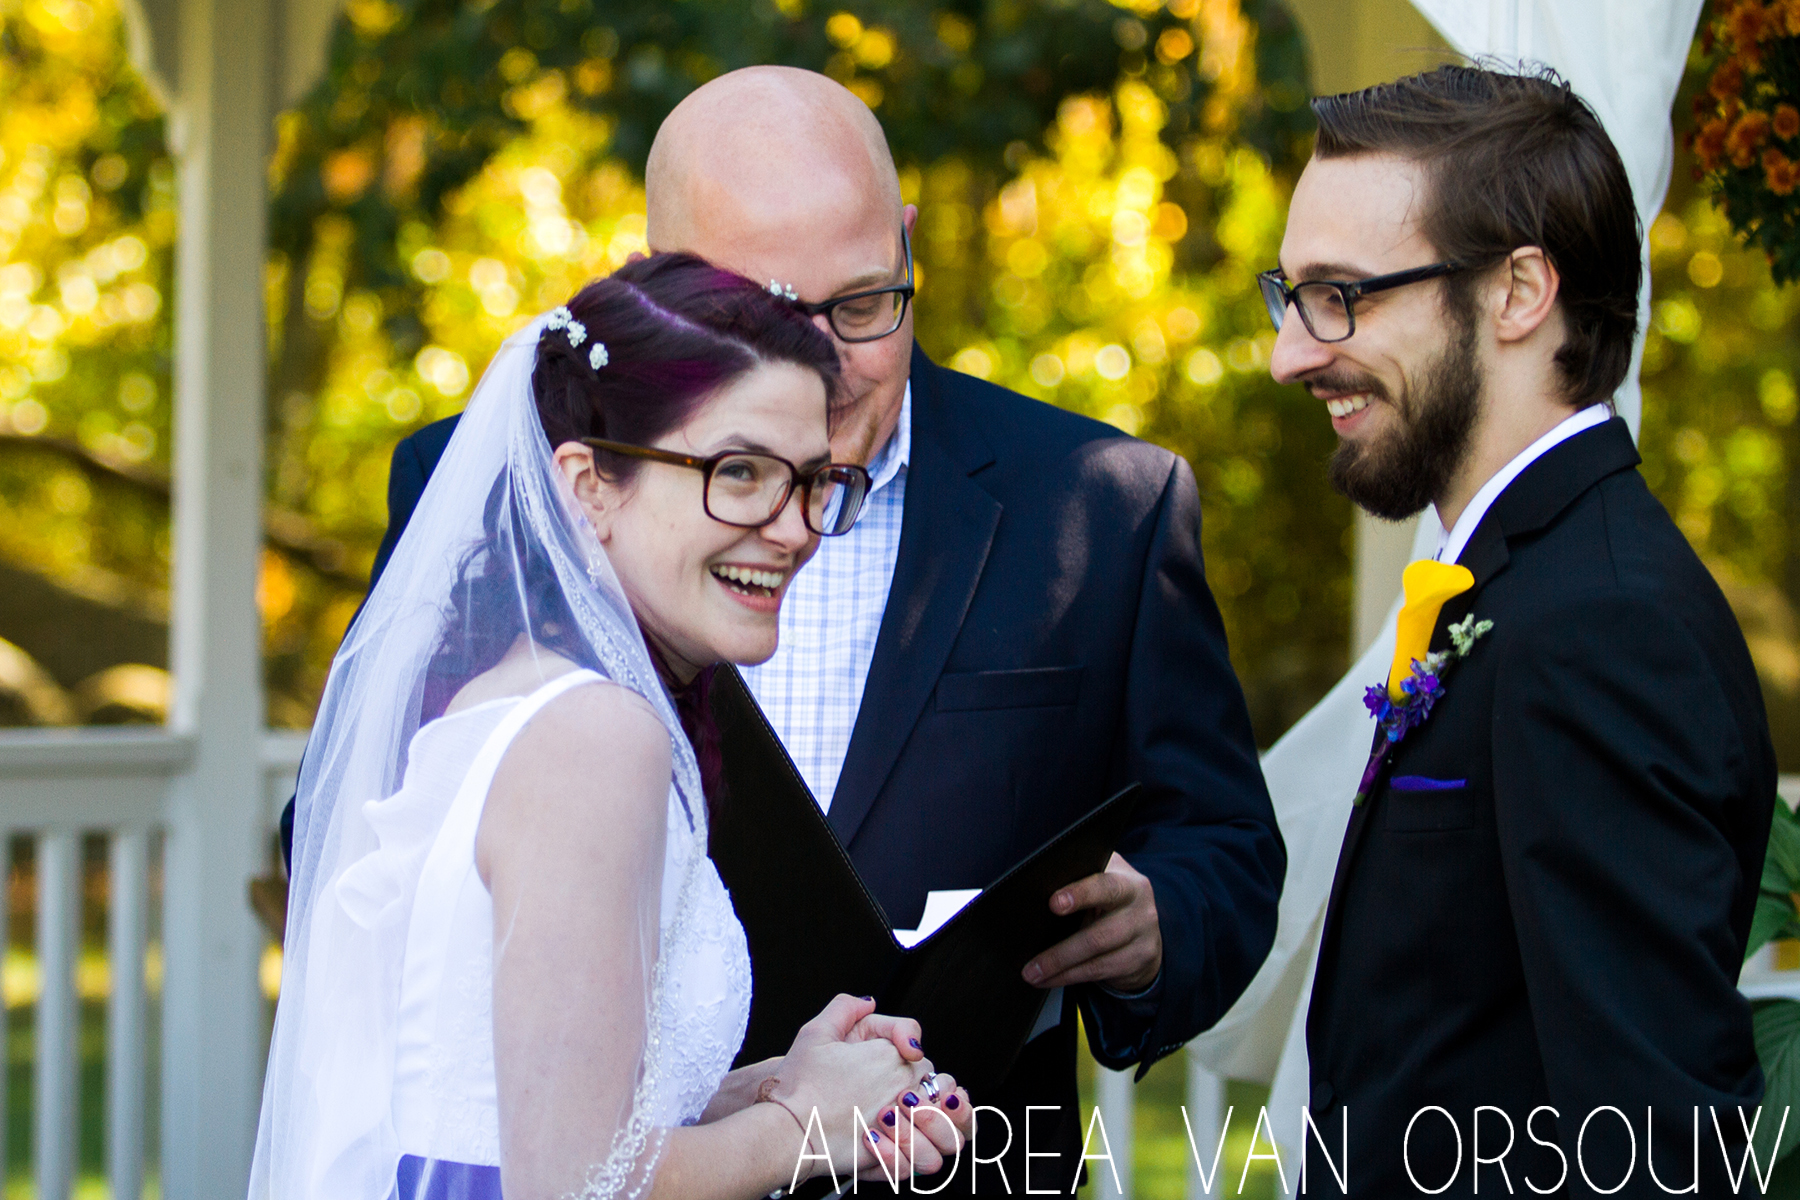 laughing_at_wedding_ceremony_connecticut_photographer.jpg